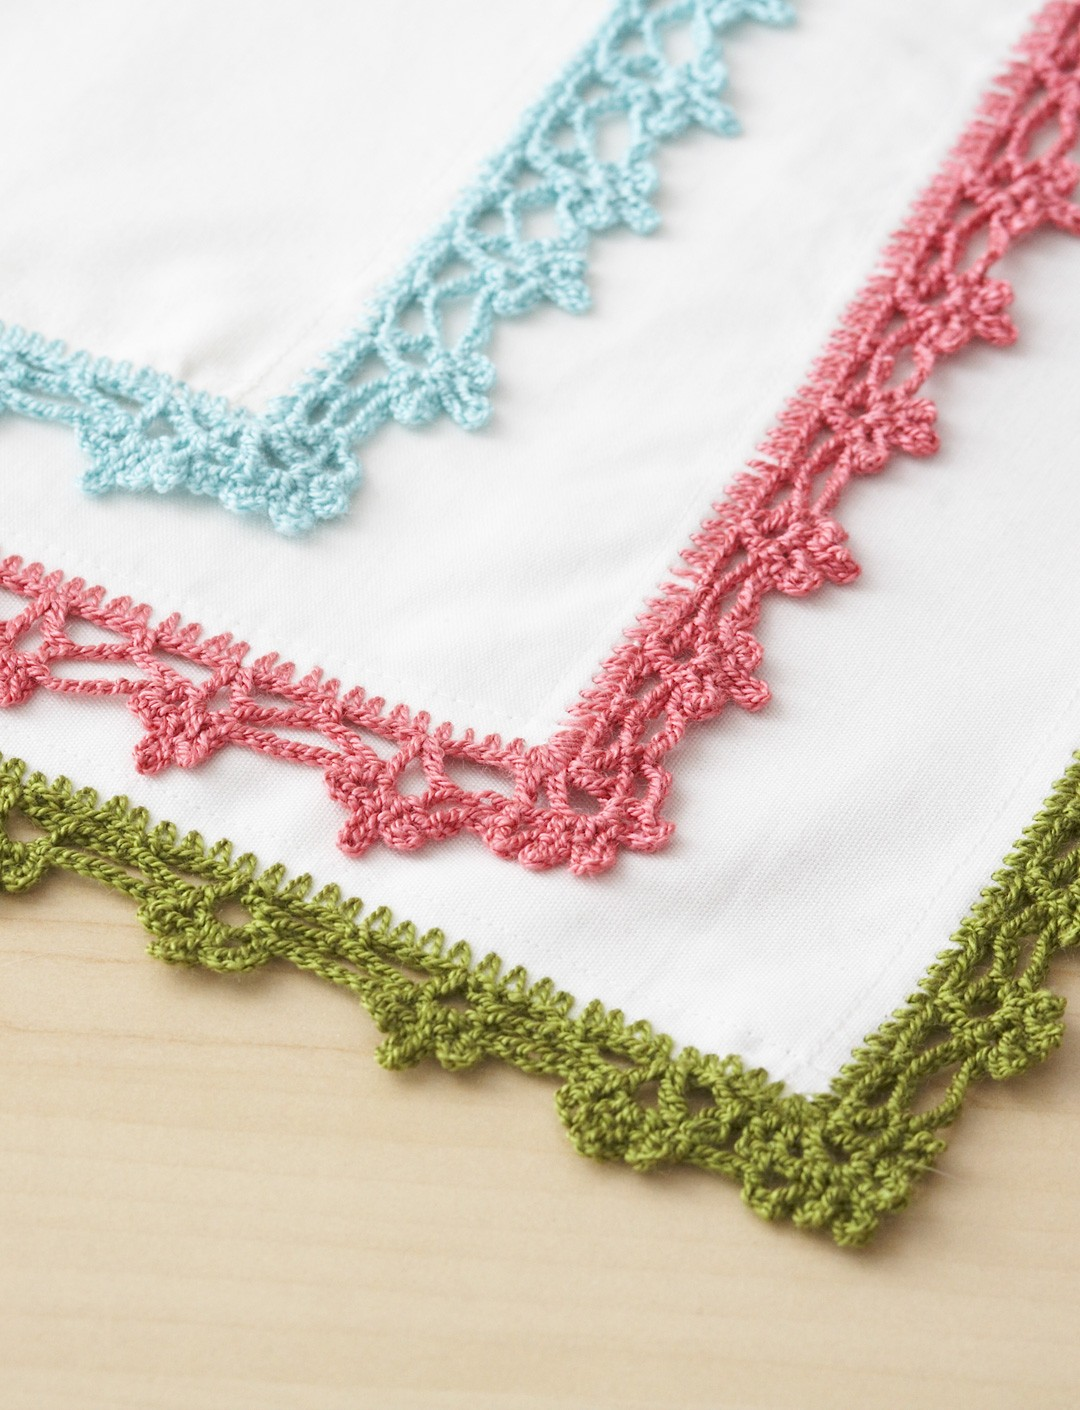 Lace Napkin Edging